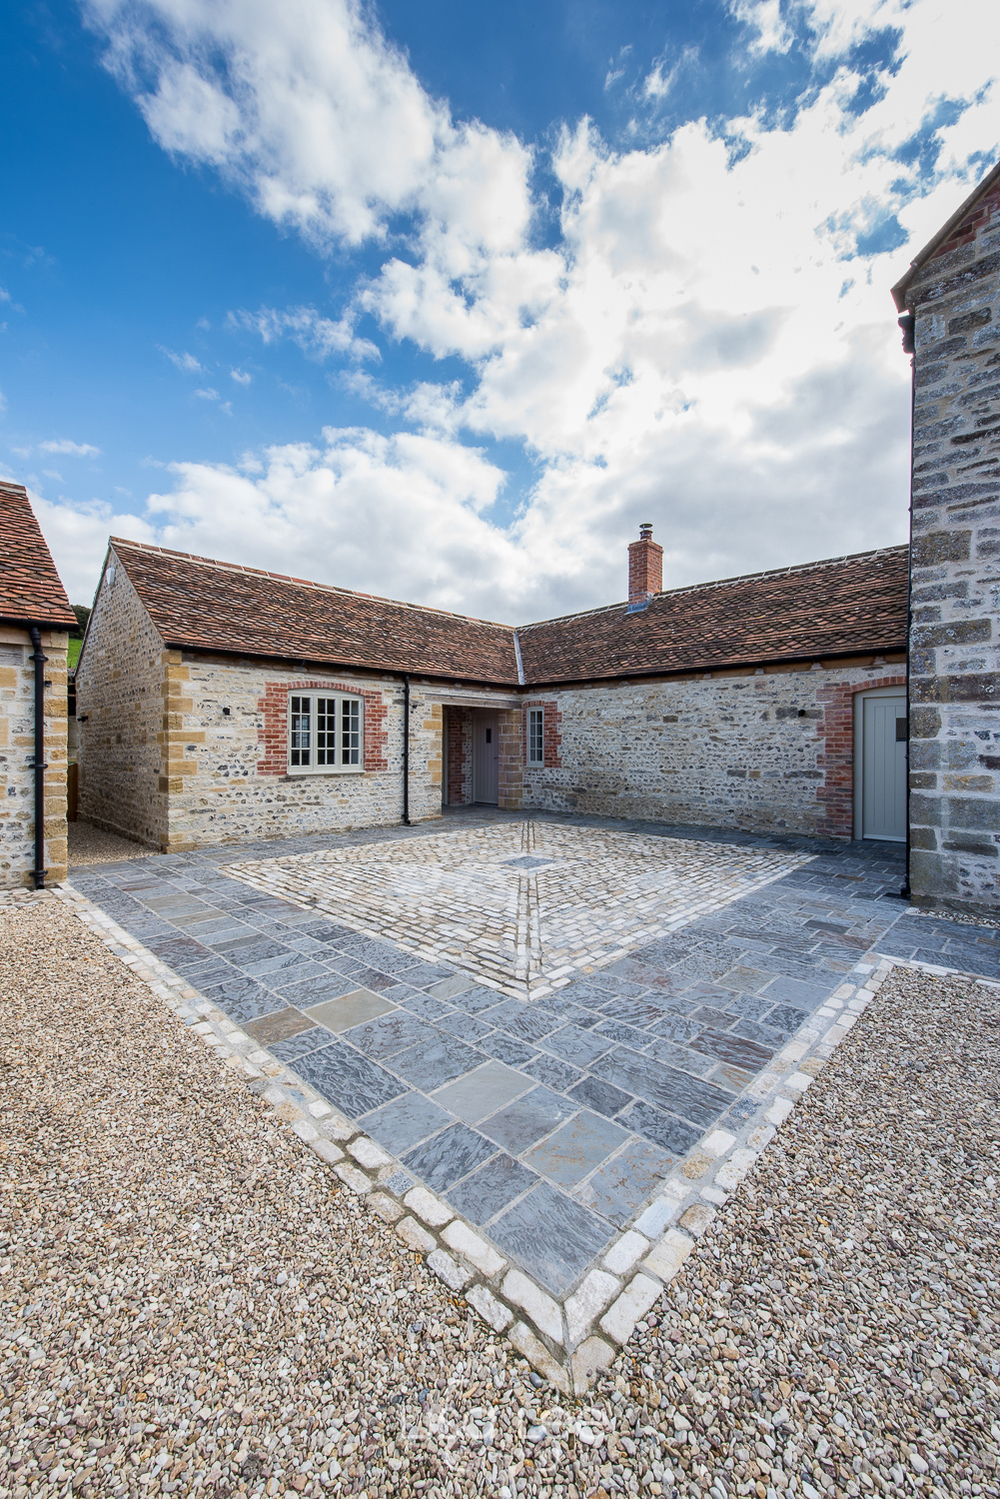 residentail-architecture-dorset-manor-farm-4.jpg